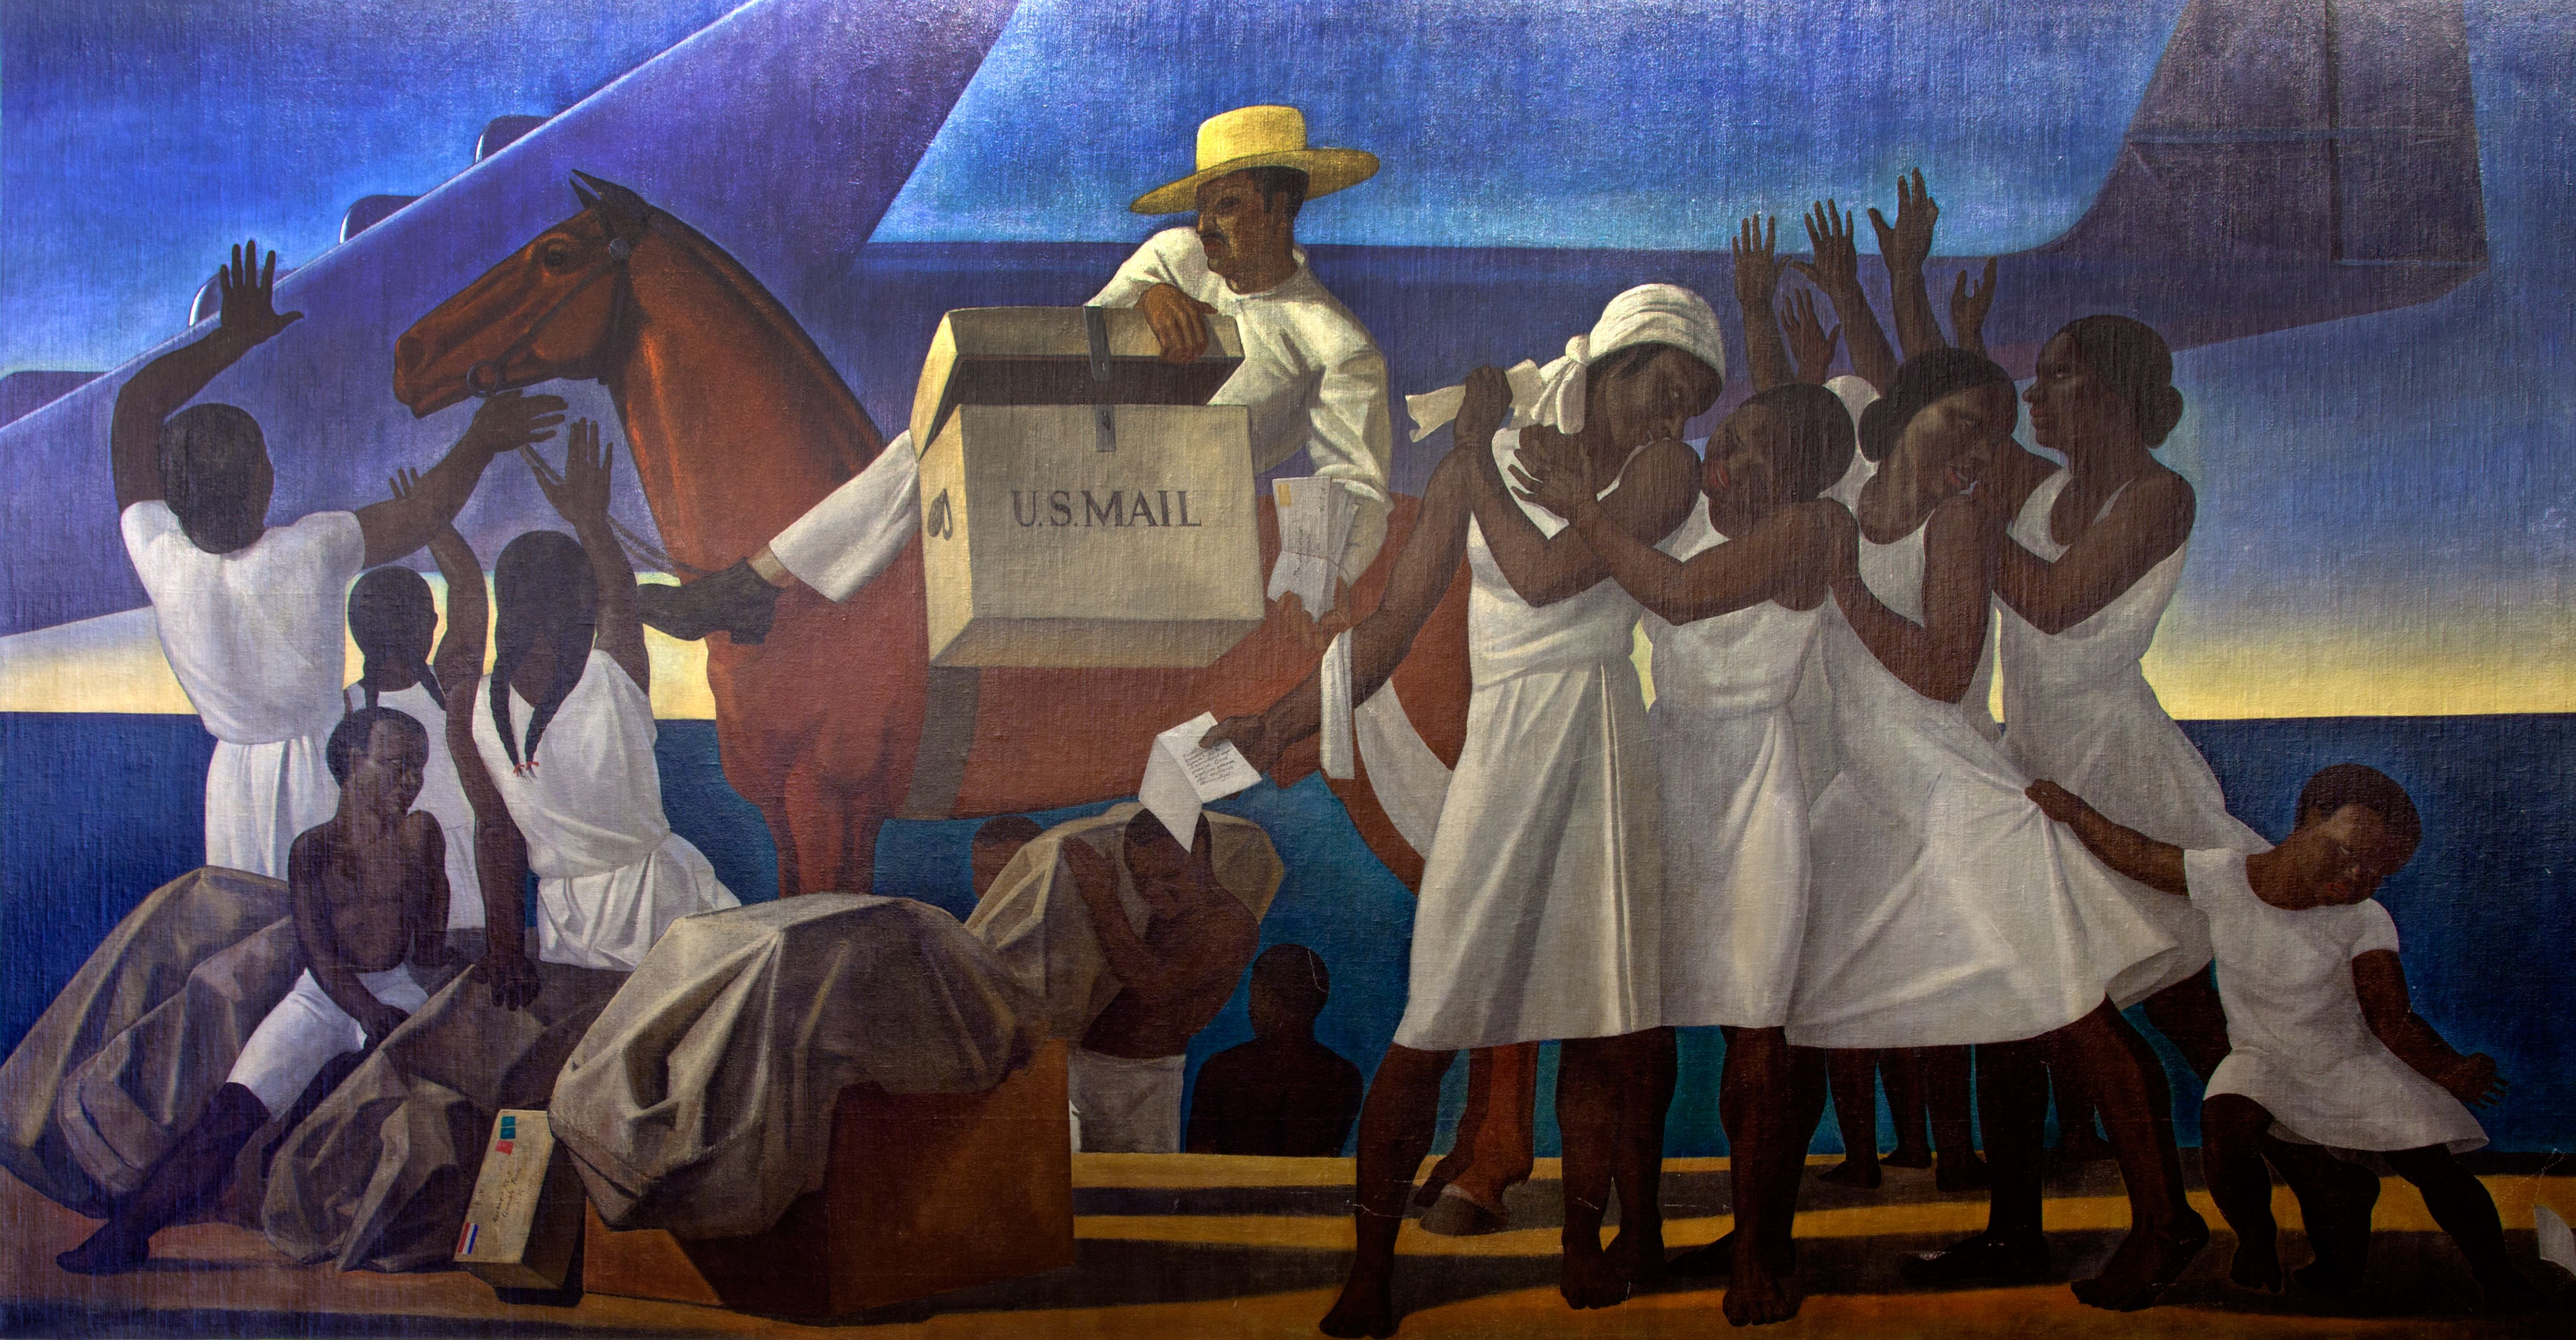 Mail service in the tropics rockwell kent mural 1937 http ift tt 2y4mhtf